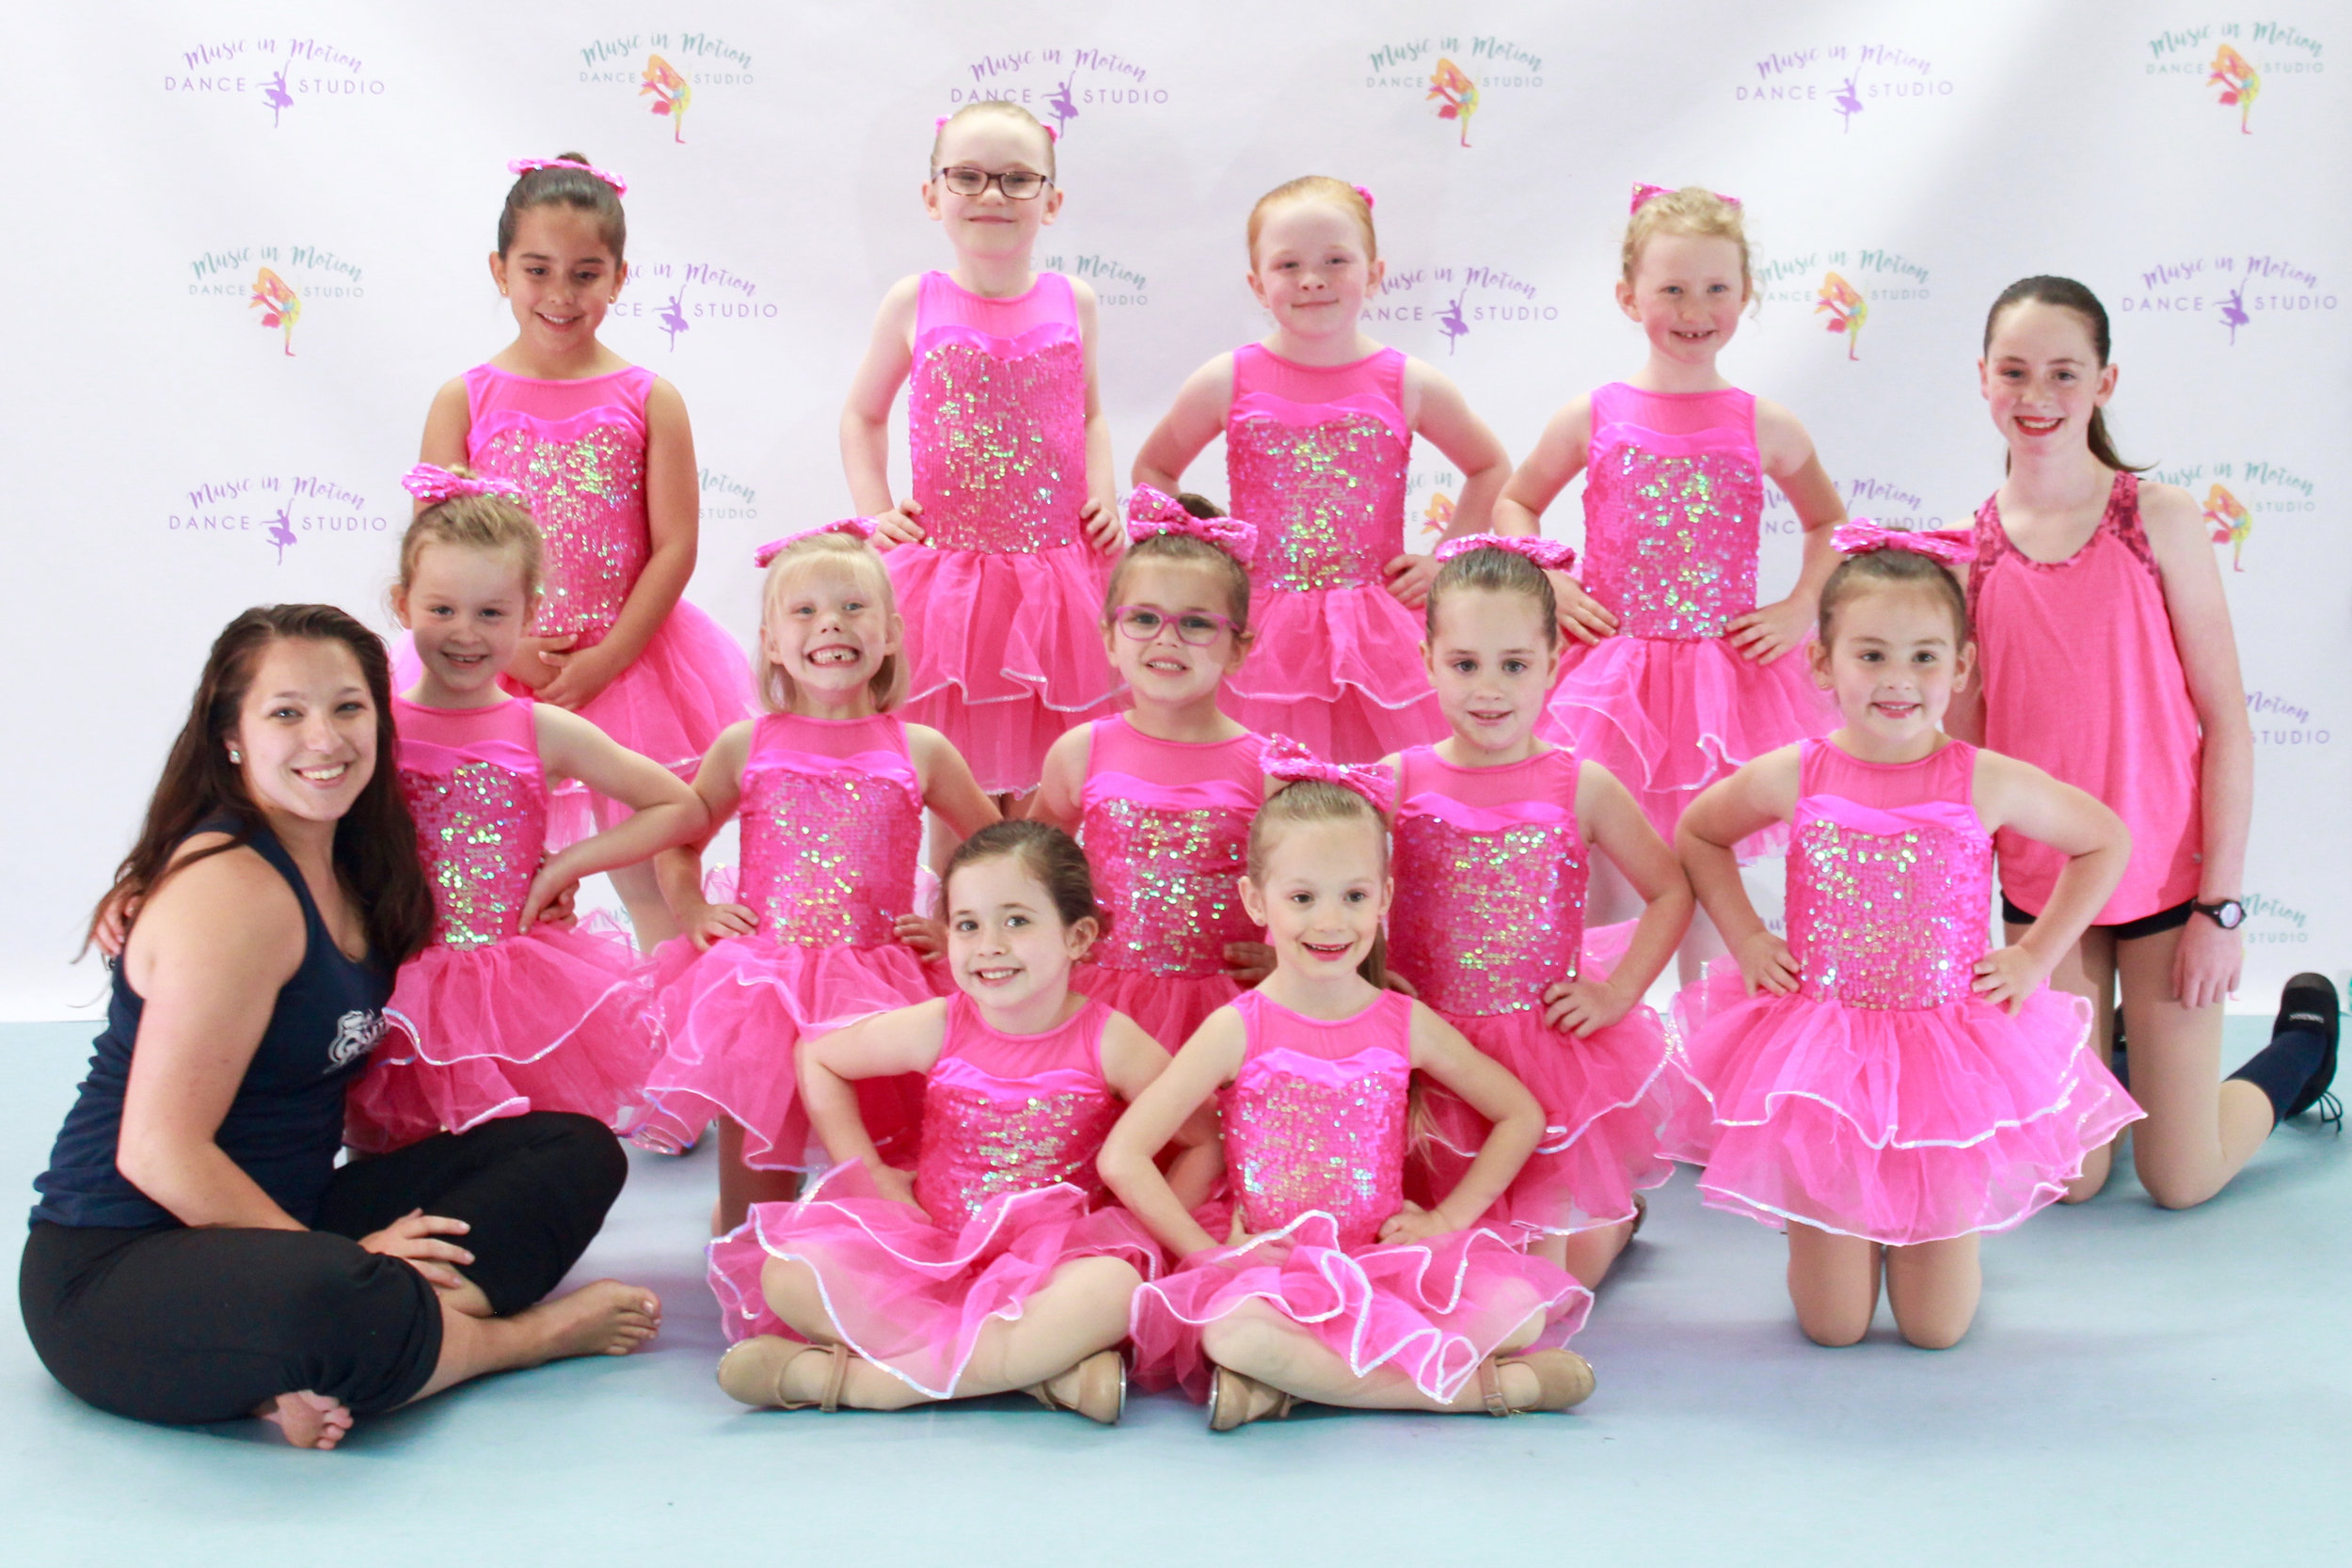 Tumble Ballet and Tap Combo dance class for kids at Music in Motion in Virginia Beach.jpg